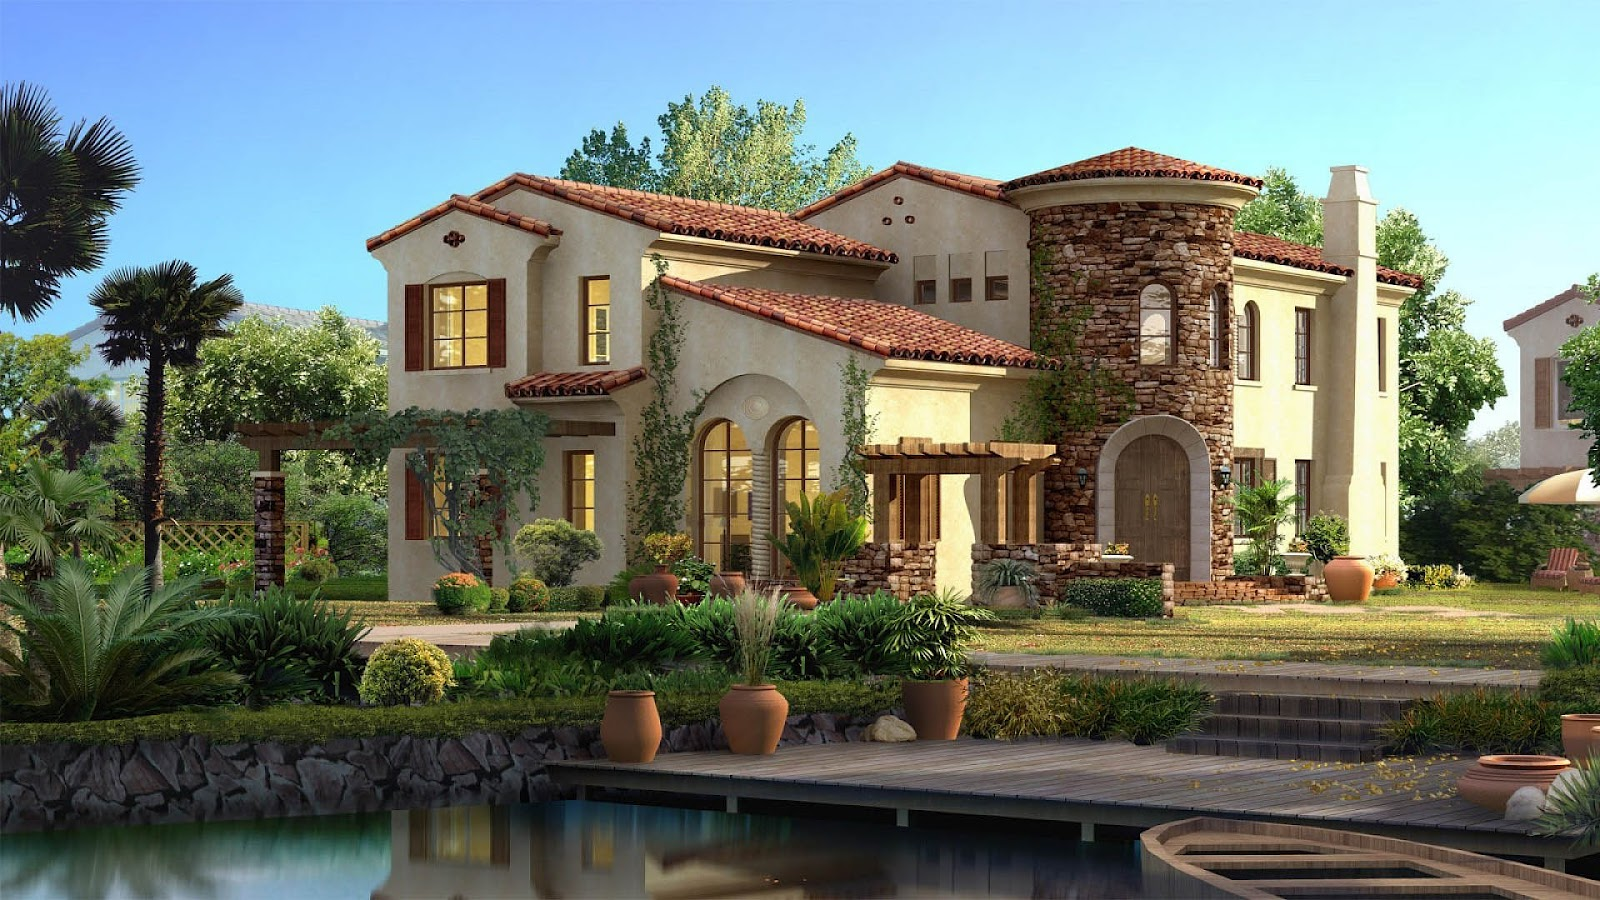 house hd wallpapers cool desktop pictures widescreen beautiful house 1600x900